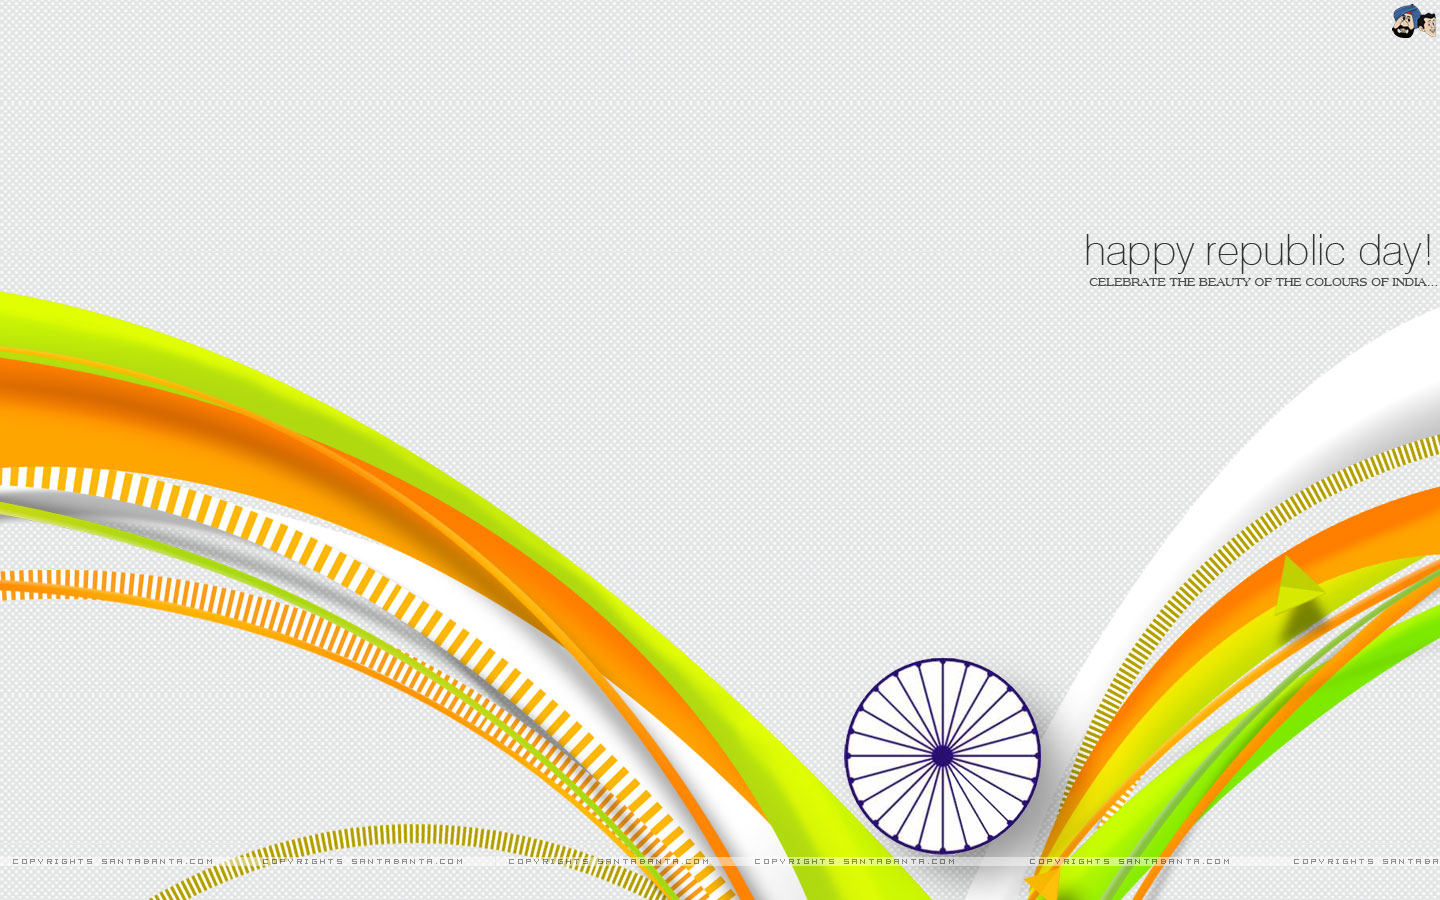 http://4.bp.blogspot.com/-slnzk1ZGEJY/UQLVFK4HsBI/AAAAAAAAOb0/mE8zC99Ar2Y/s1600/republic-day-of-india-photo3.jpg